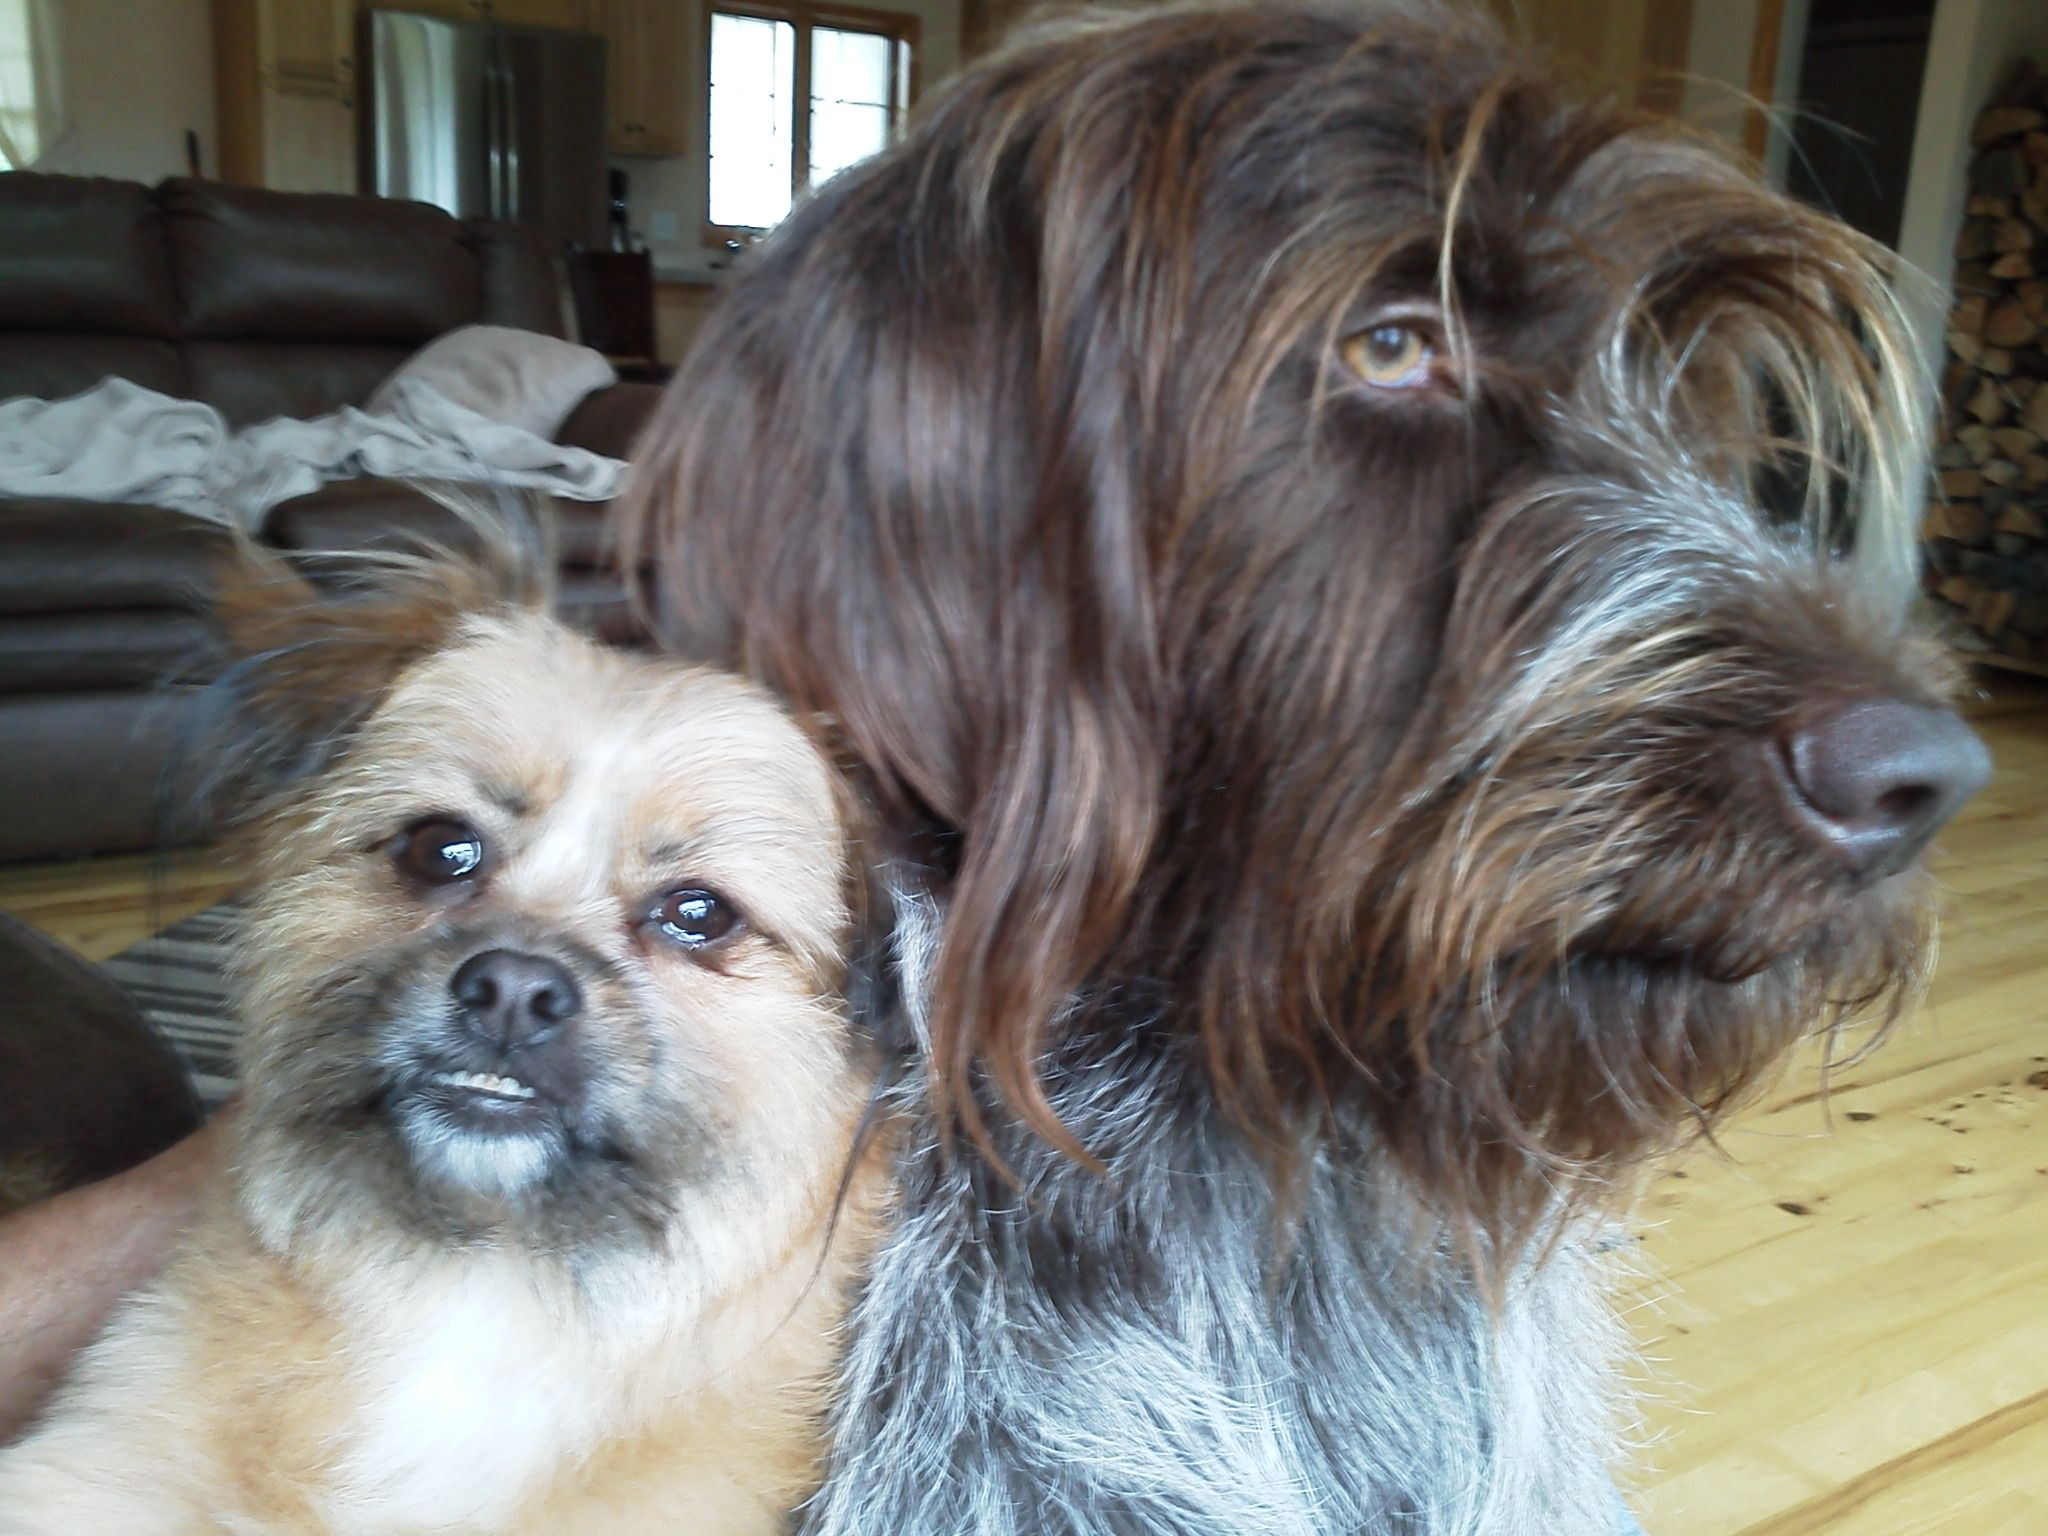 Sidor, Wirehaired Pointing Griffon and Bella Pom mix